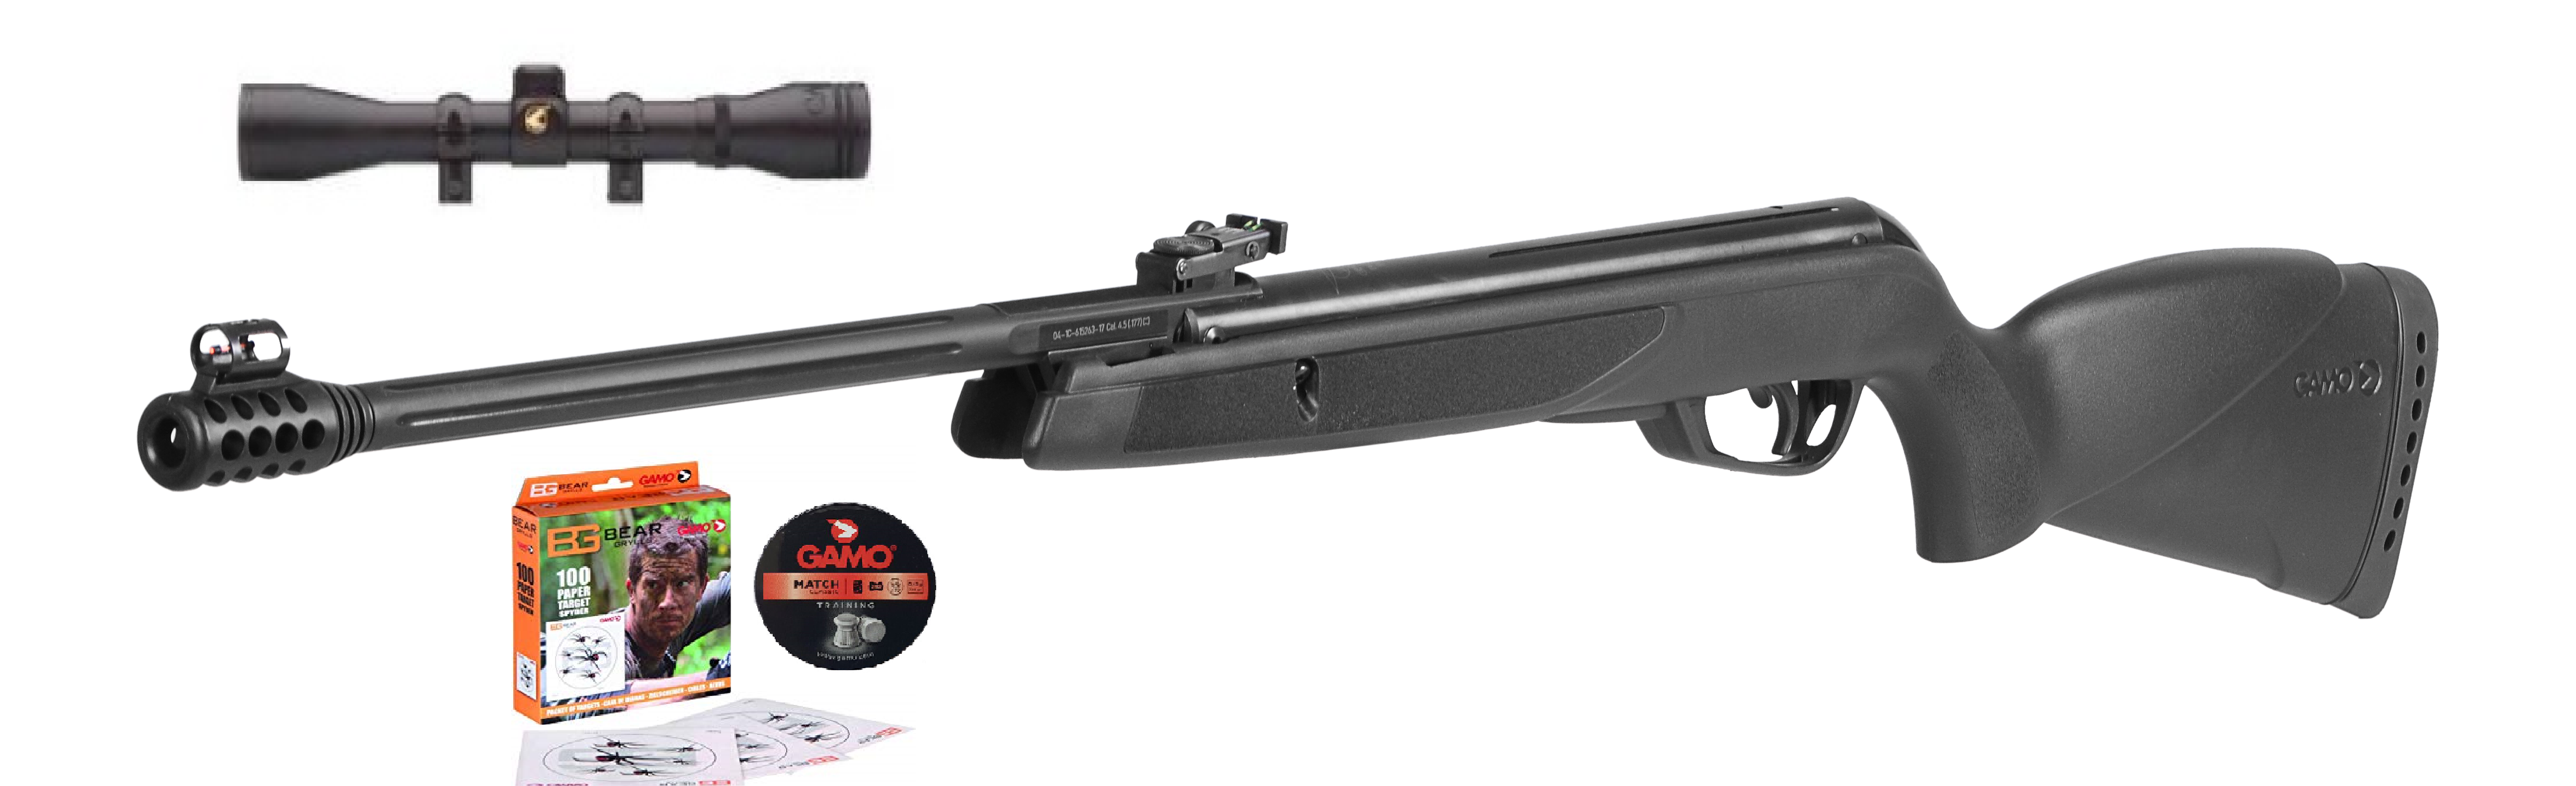 Gamo BLACK BEAR cal.4,5mm + puškohled 4x32